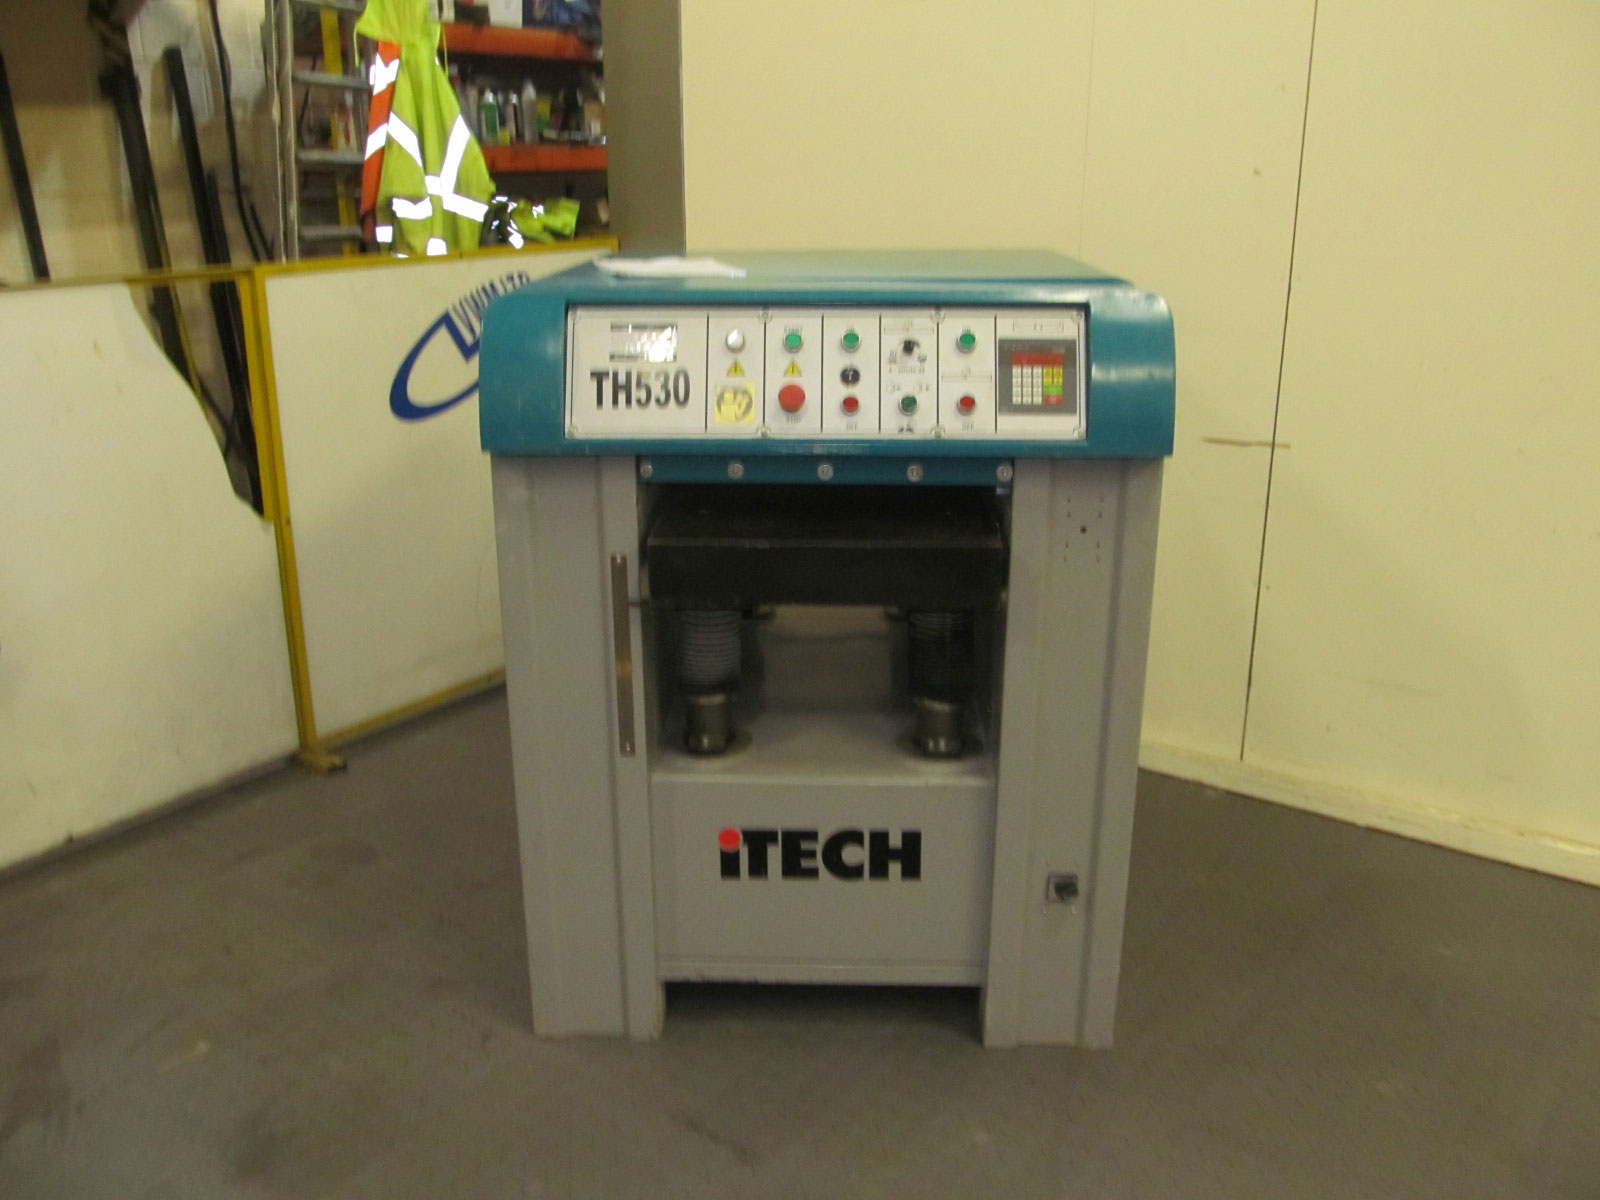 Itech TH530 Thicknesser with programmable table